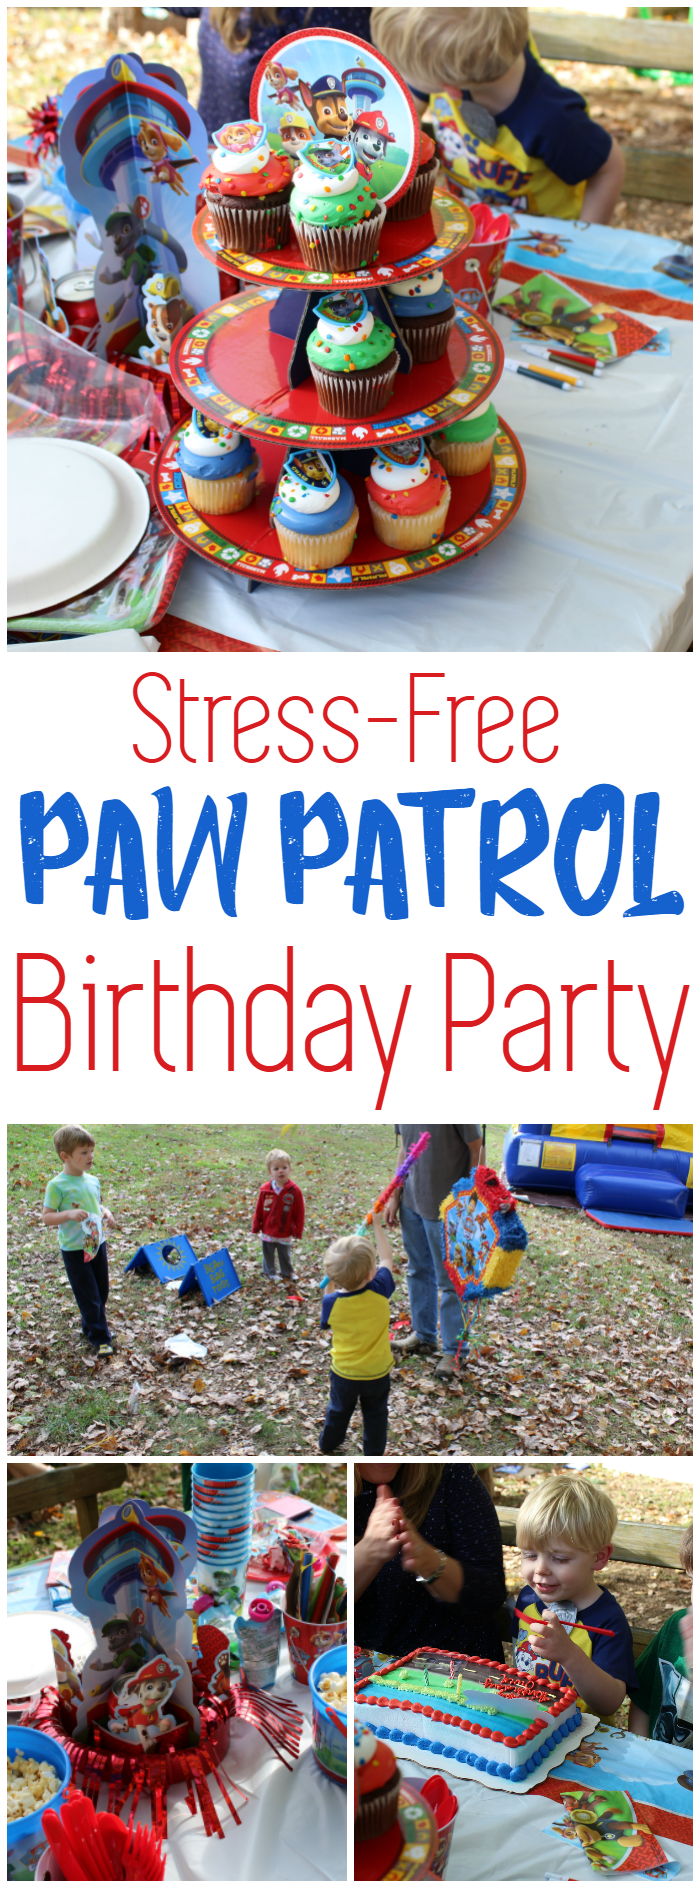 Throw your kid a great Paw Patrol birthday party without stressing yourself out!